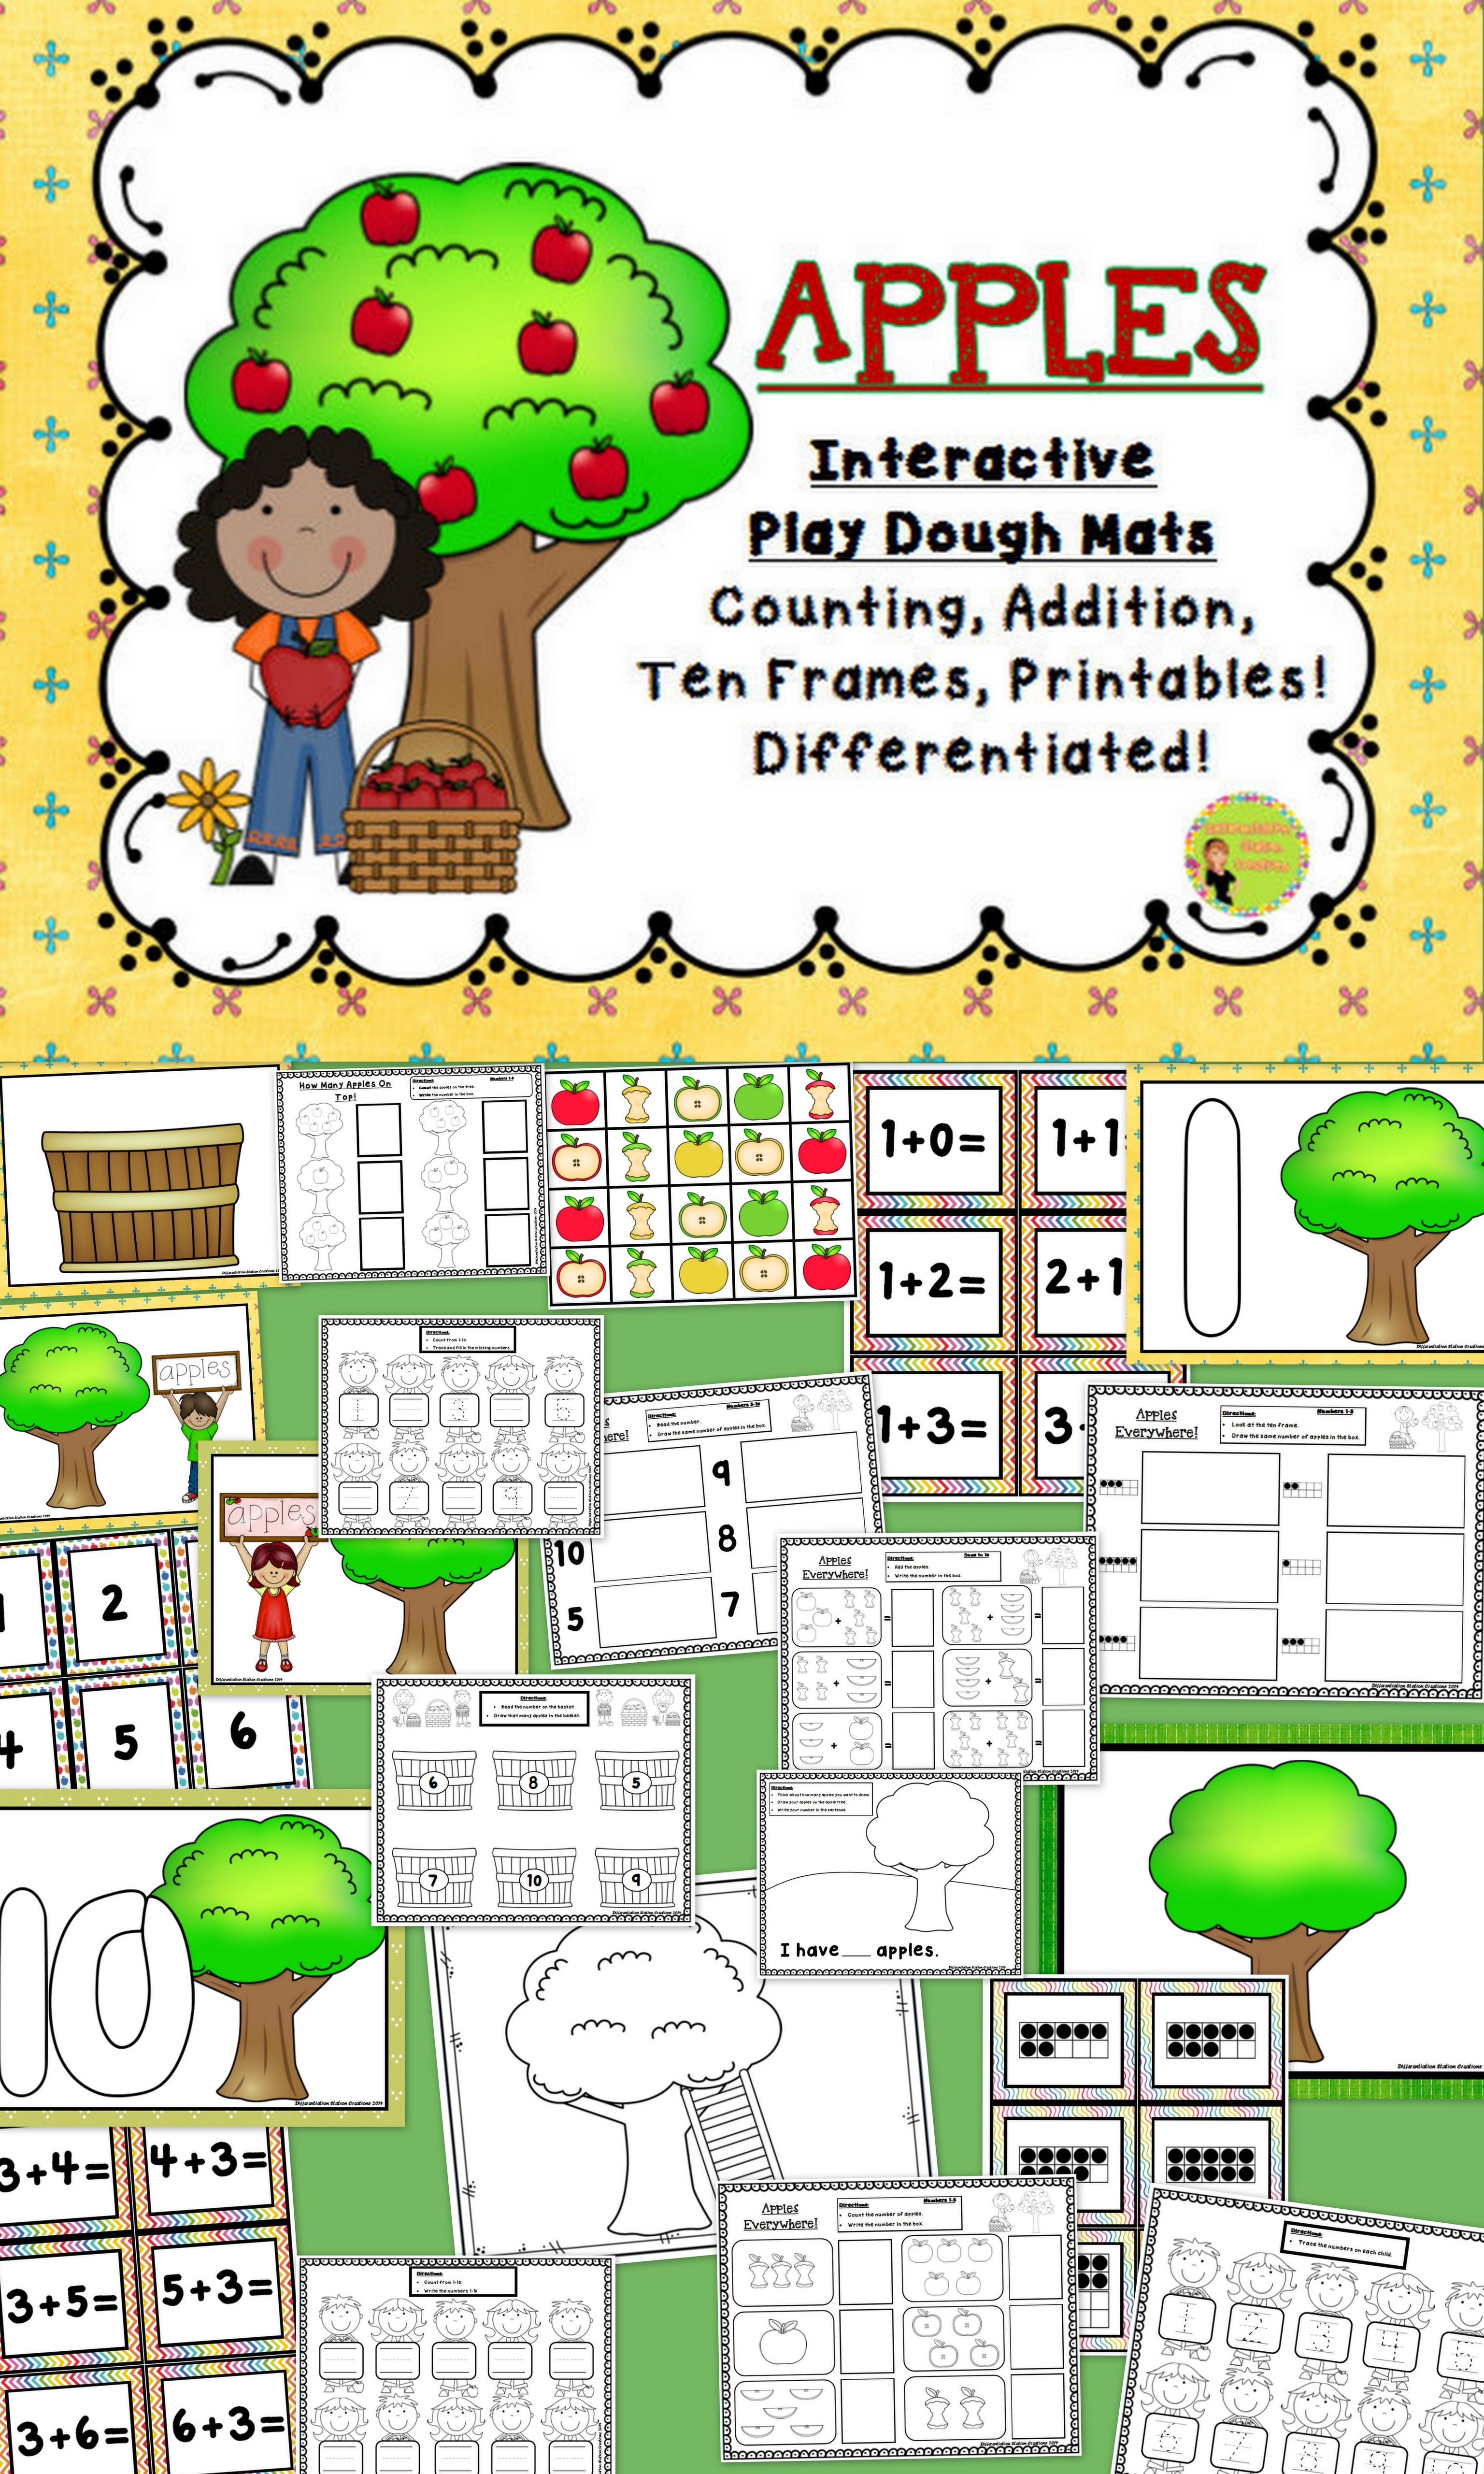 Apples Interactive Play Dough Mats Counting Centers Printables